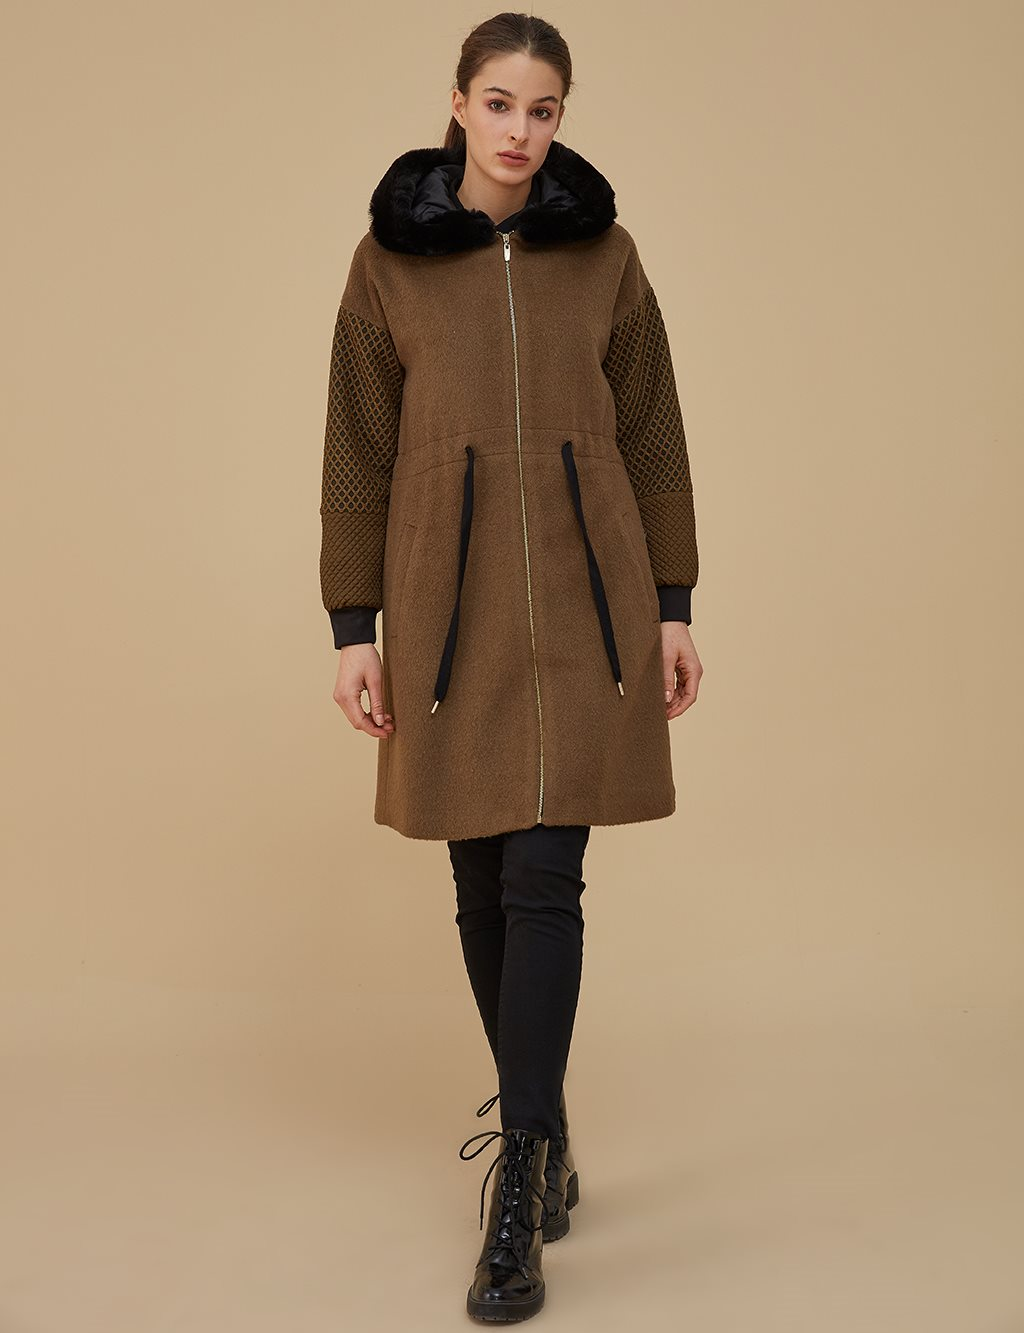 Ruched Coat With Furry Detail A9 77007 Khaki